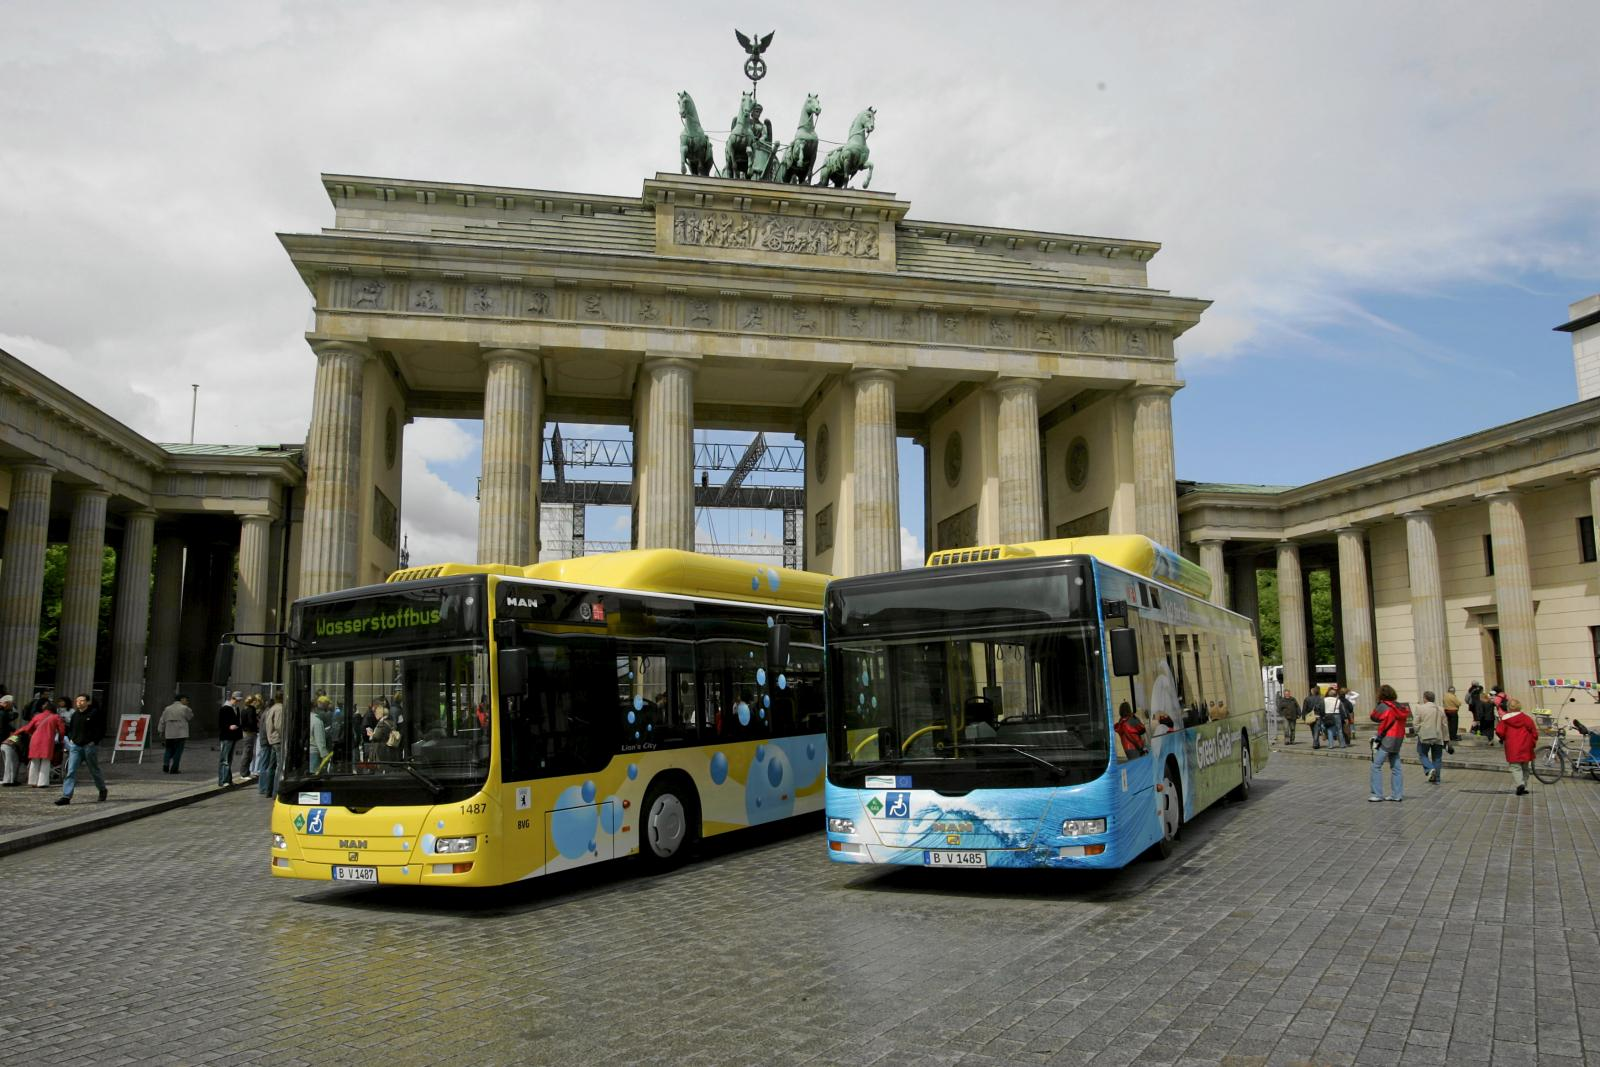 BVG bus (Public transports of Berlin Company) running with hydrogen